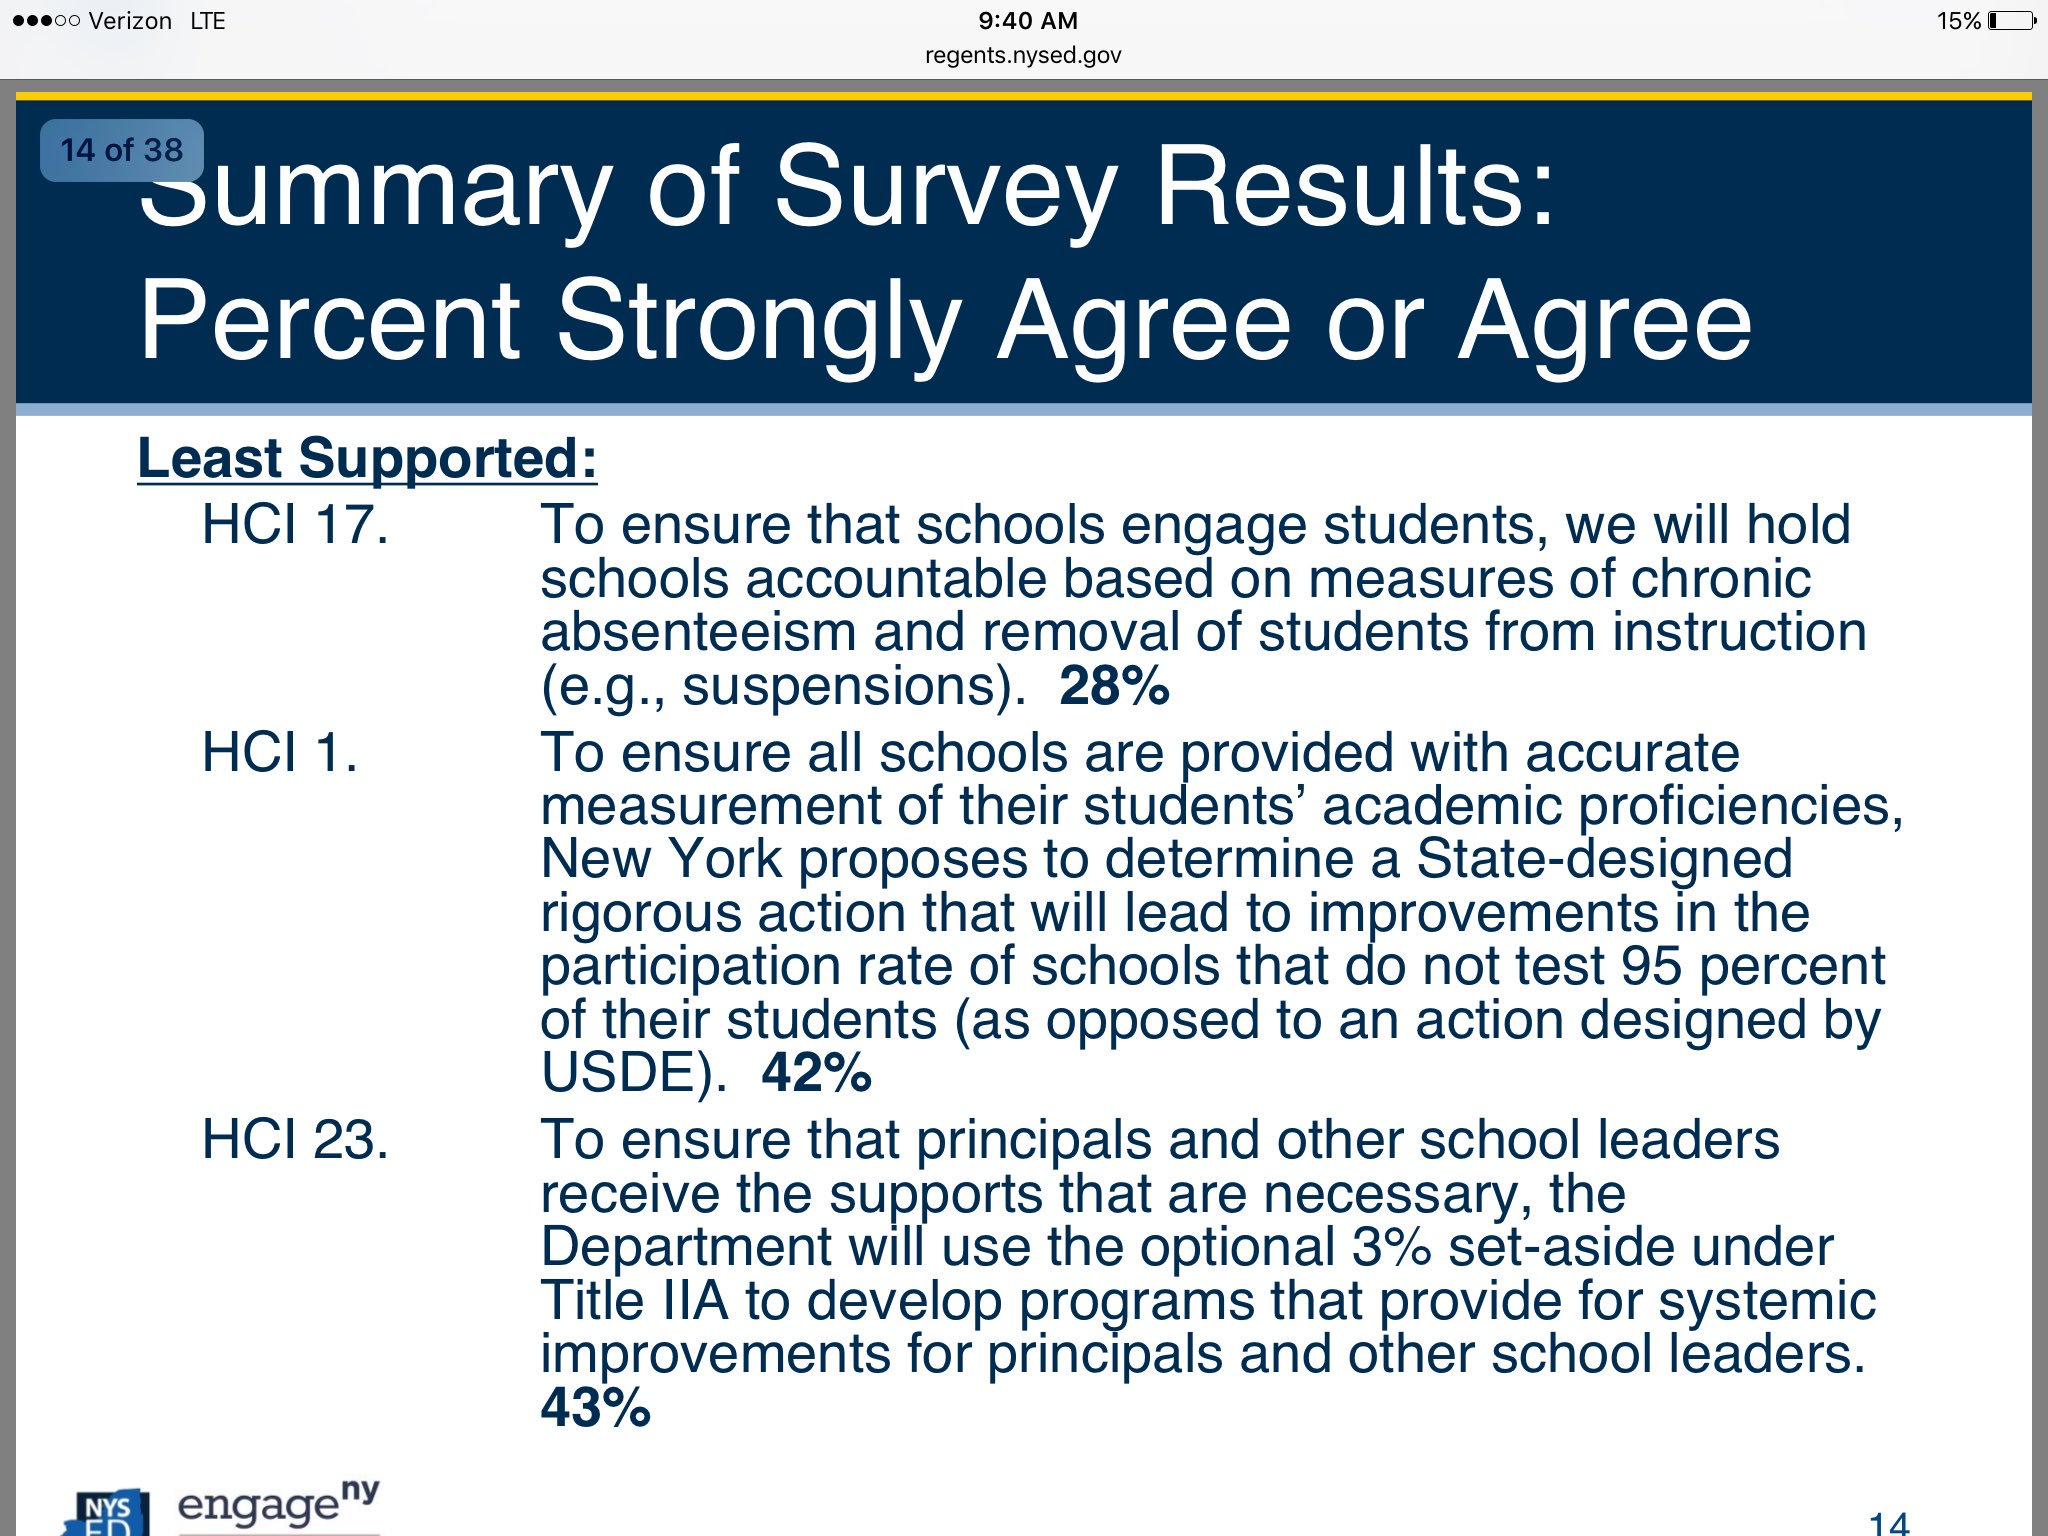 Least supported high concept ideas, worry from @NYSEDNews that question 17 may need to be looked at to reflect intent @NYSPTA https://t.co/0PHkL5SEIk